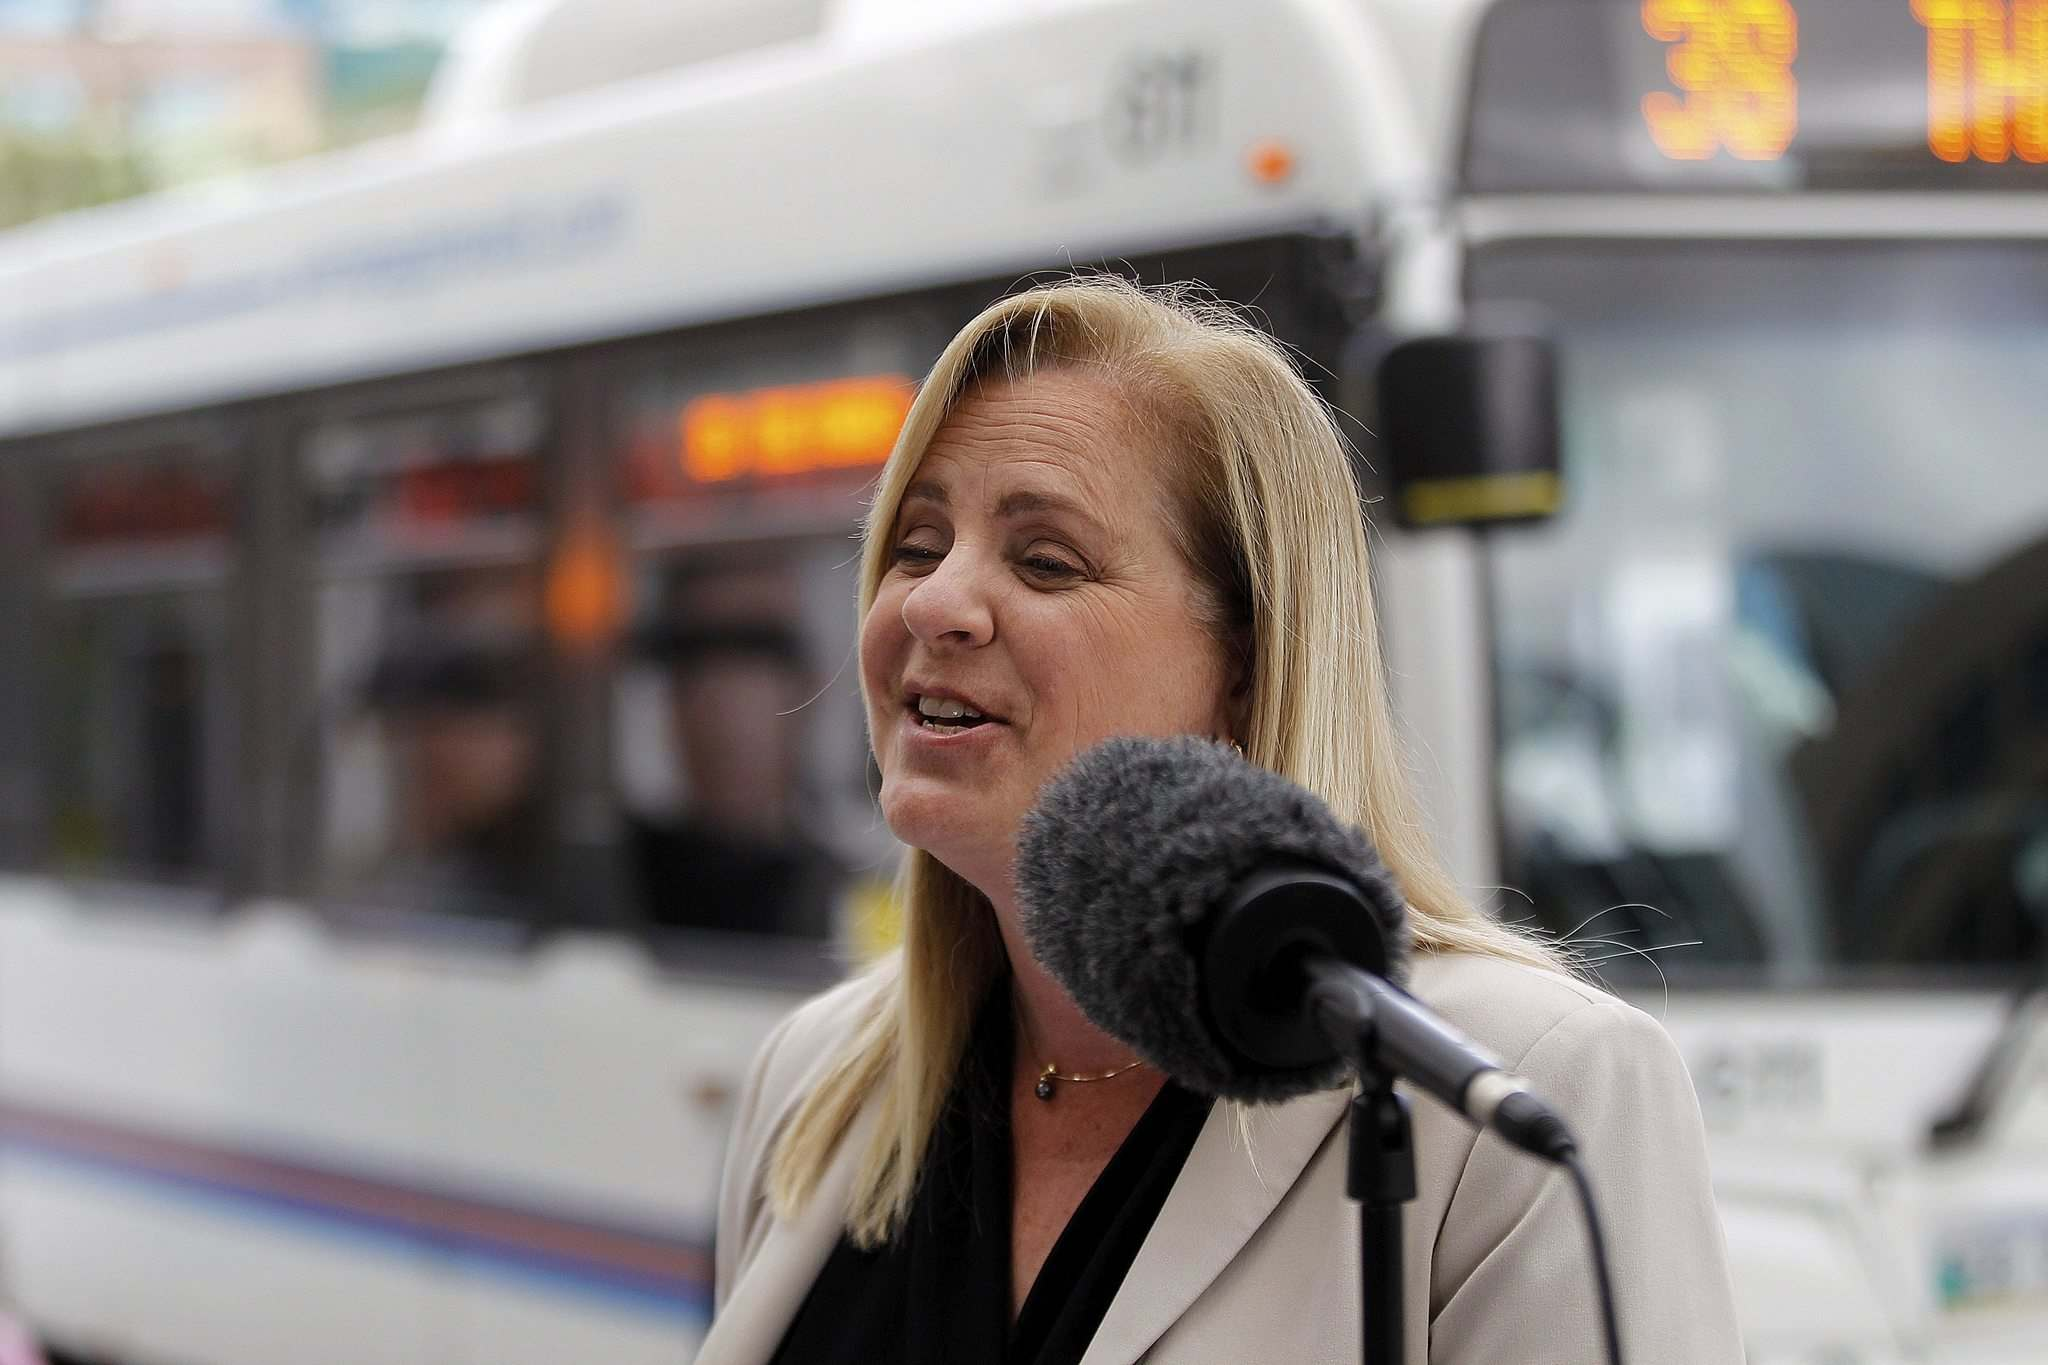 PHIL HOSSACK / WINNIPEG FREE PRESS - Mayoral Candidate Jenny Motkaluk holds a press conference Tuesday Morning at Portage ave and Kennedy. - August 14, 2018</p></p>